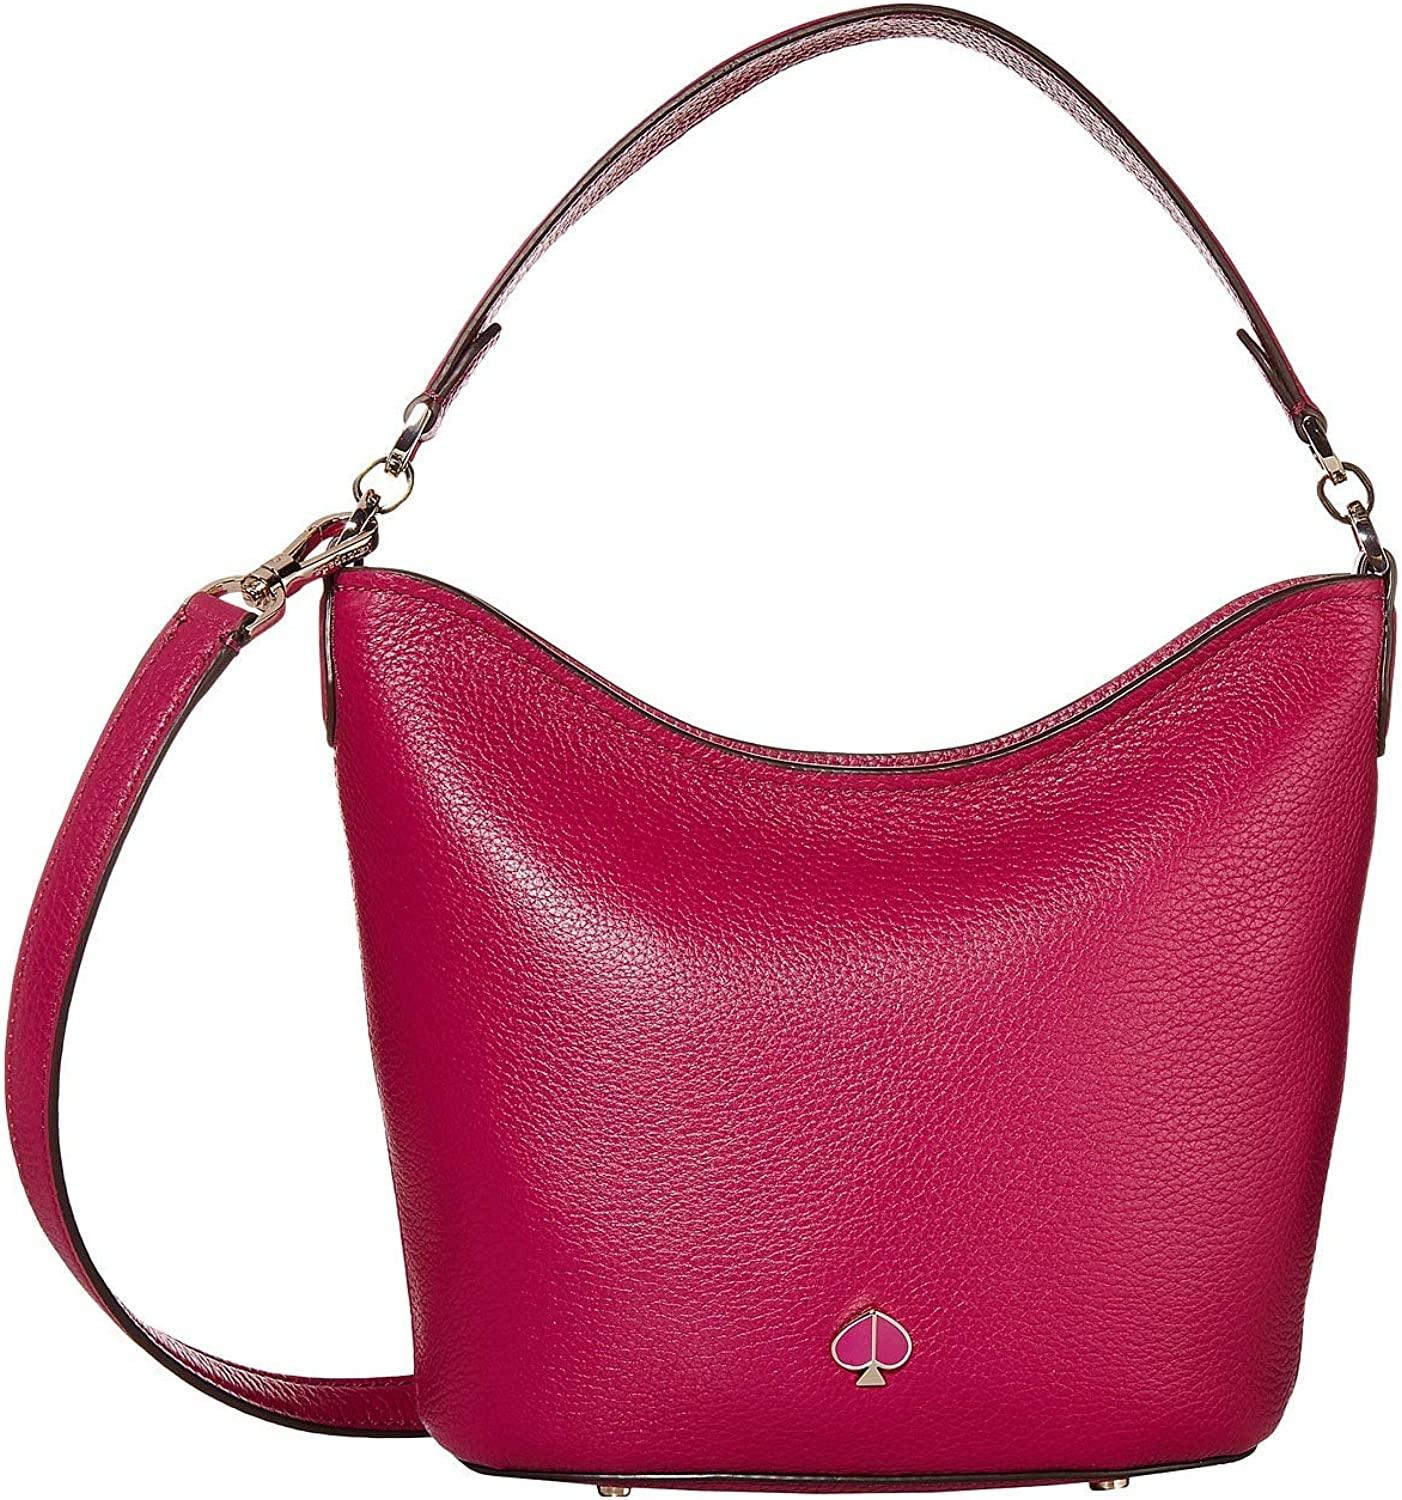 Kate Spade New York Polly Small Hobo Bag Berry Blitz One Size